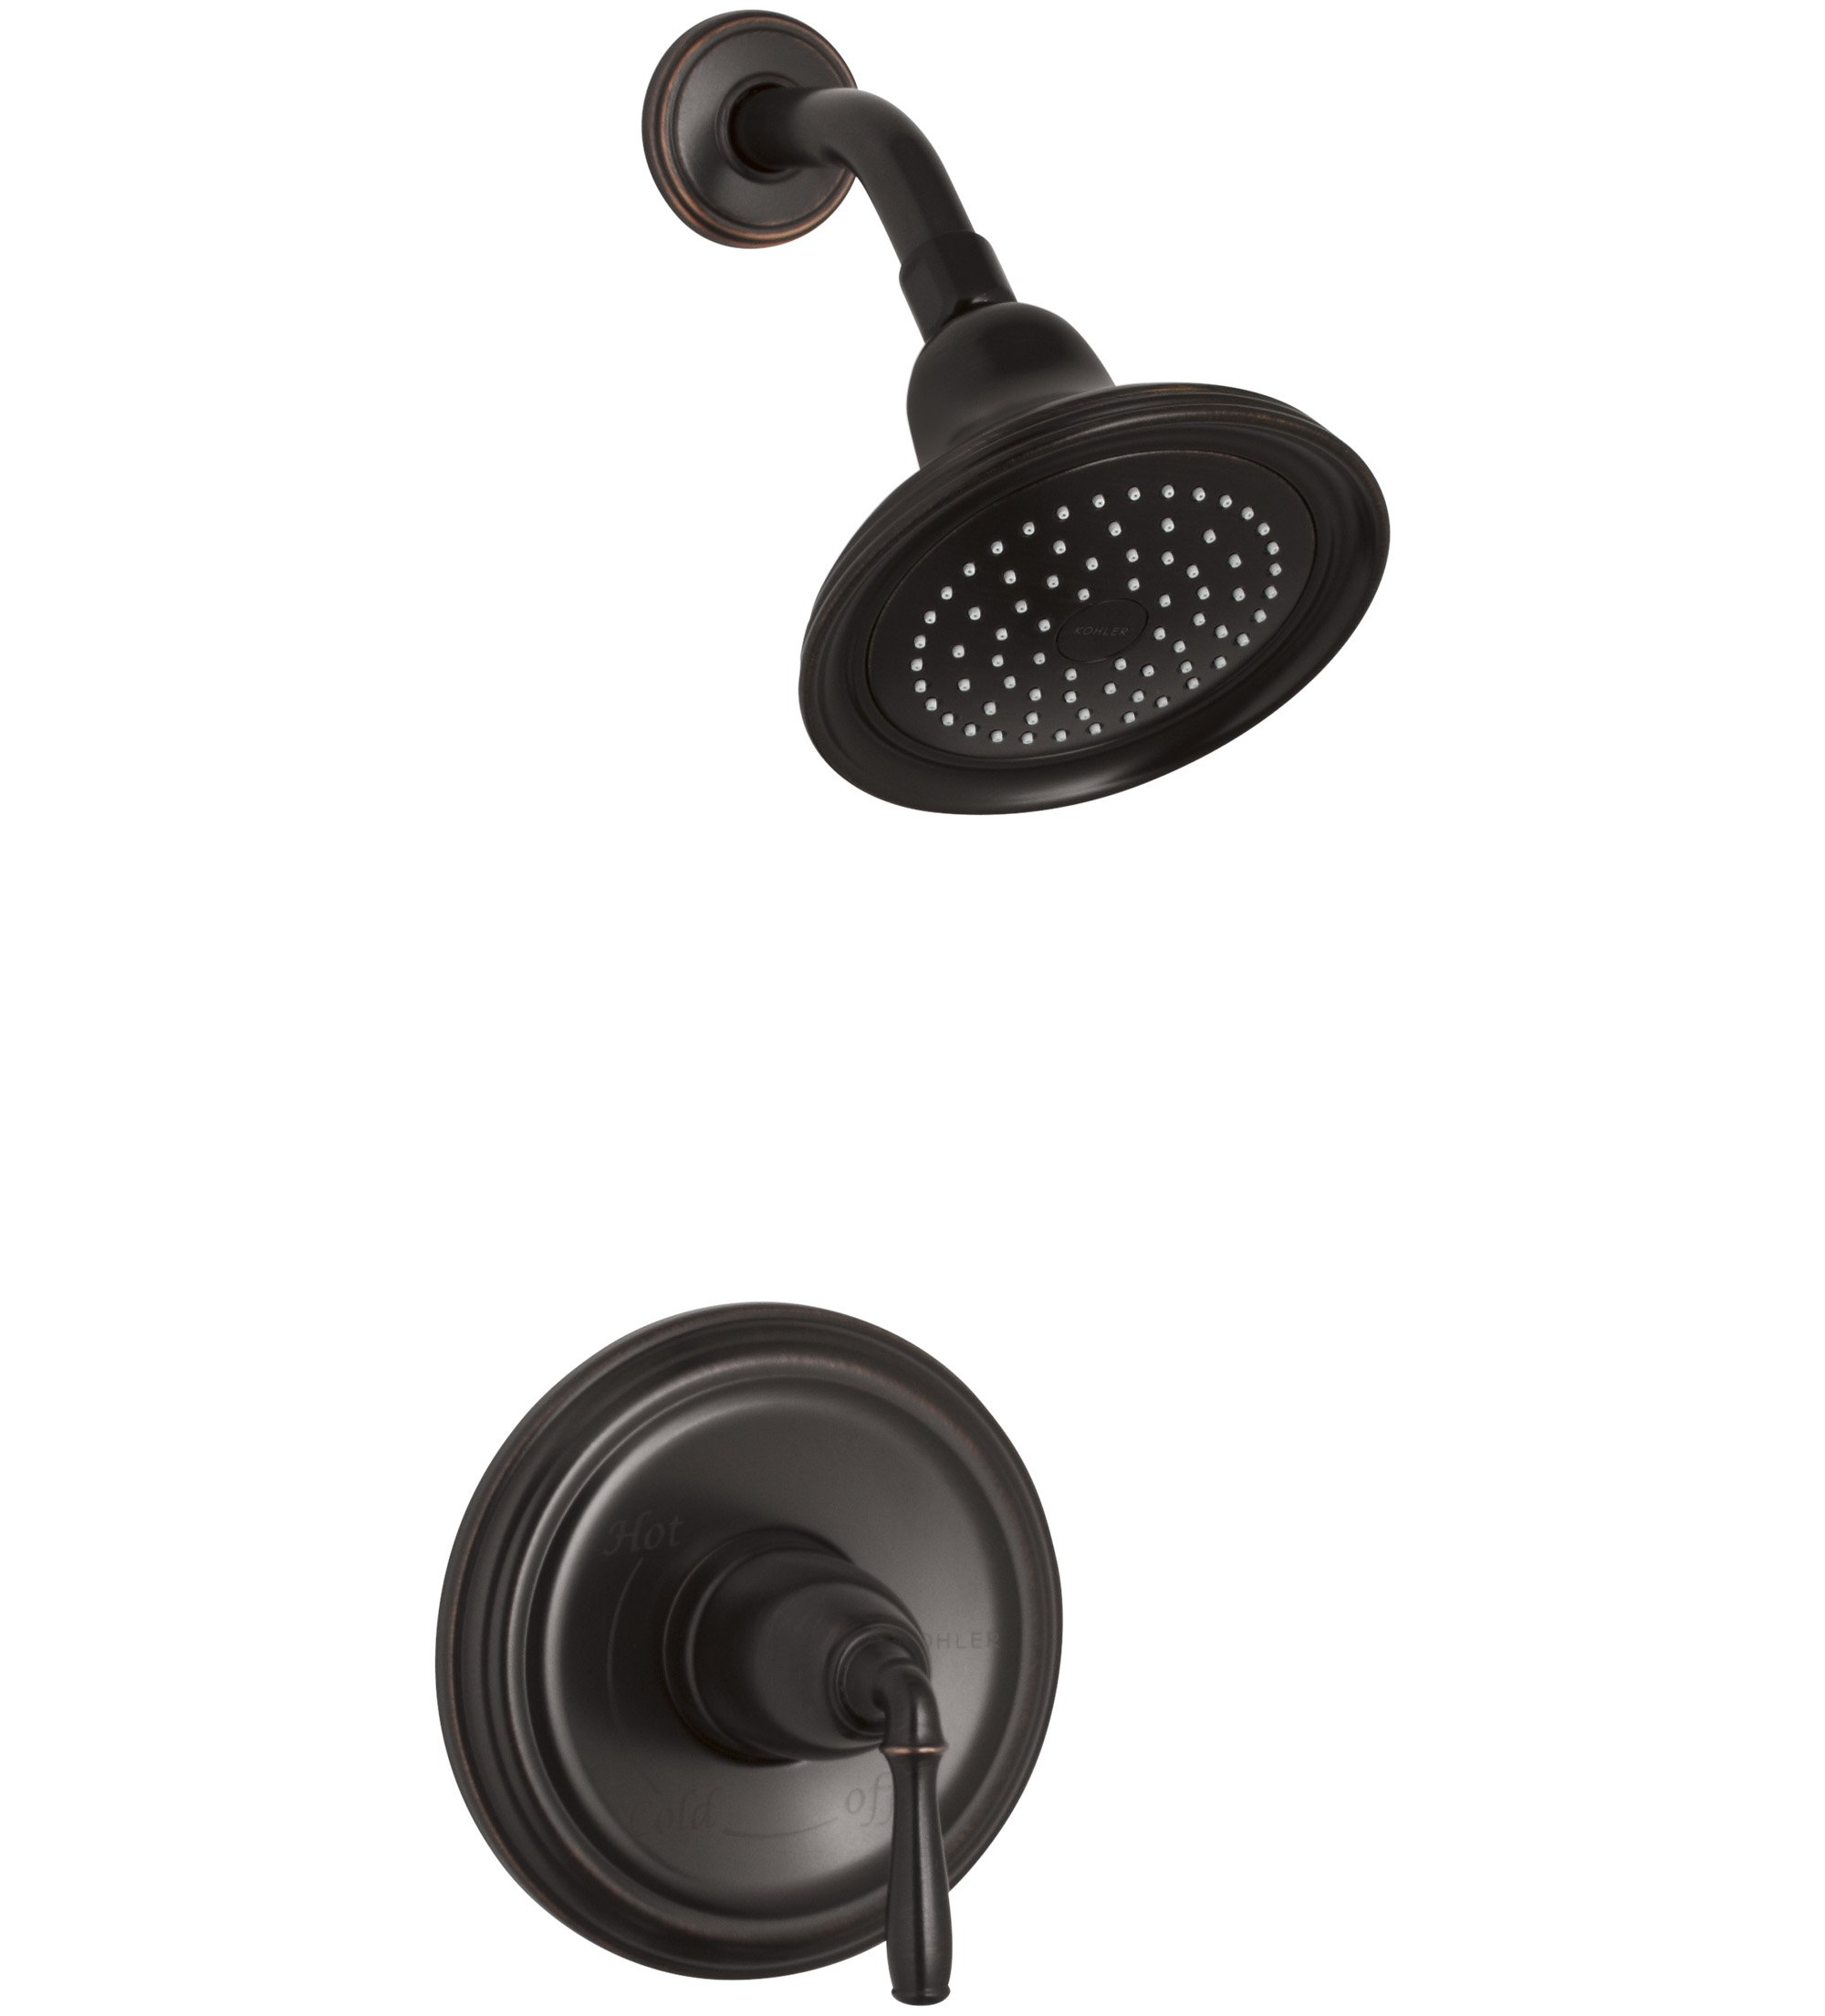 KOHLER TS396-4-2BZ Devonshire(R) Rite-Temp(R) shower valve trim with lever handle and 2.5 gpm showerhead, 1